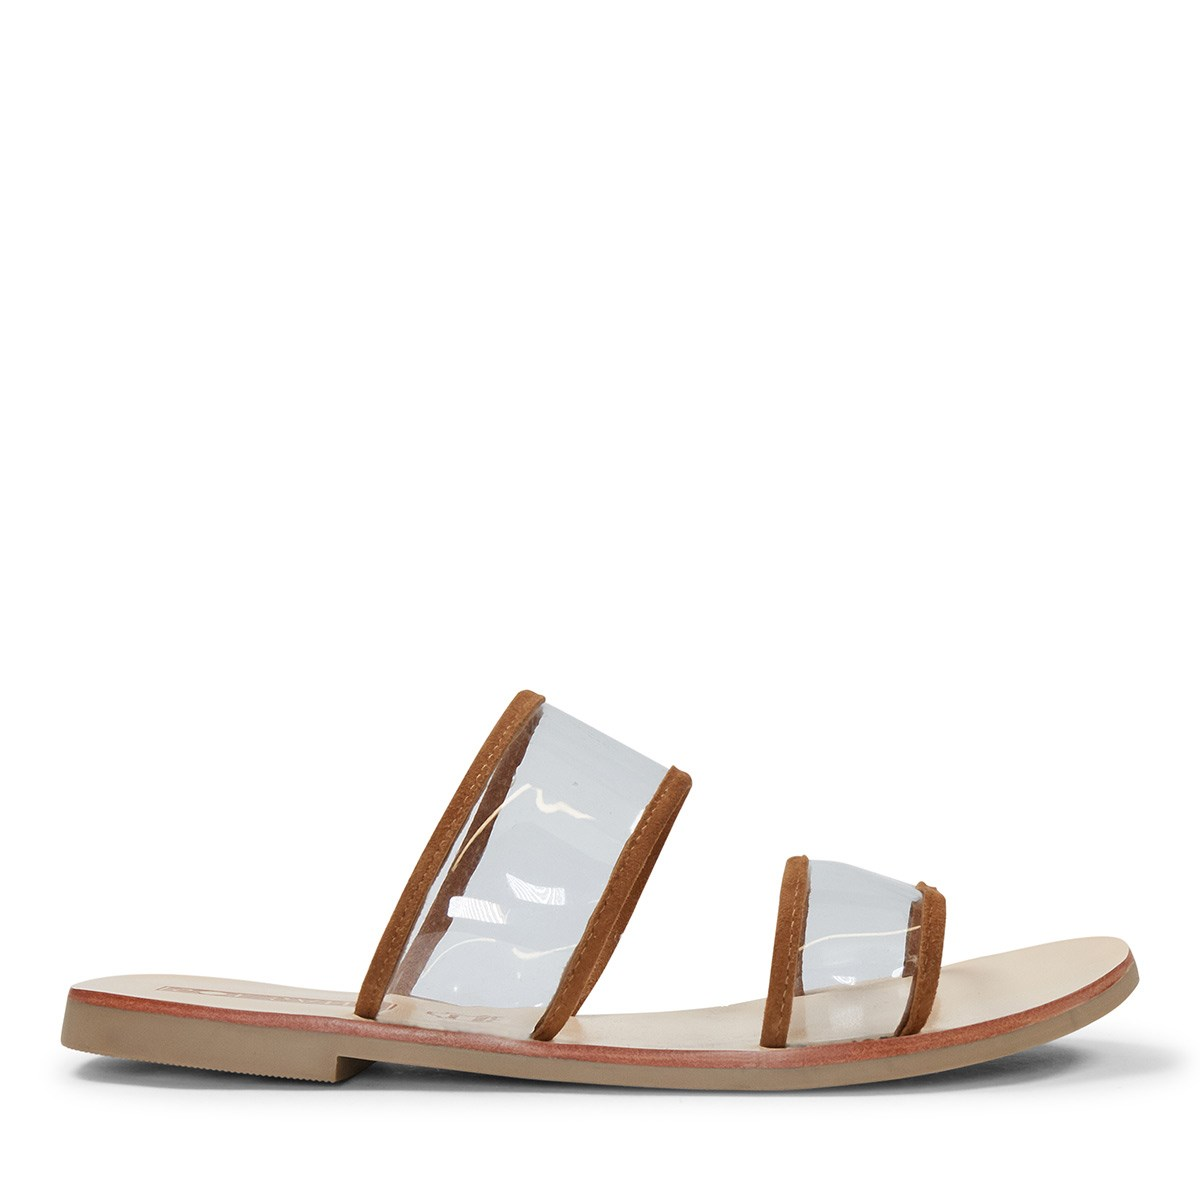 Women's Ziggy Slide in Tan